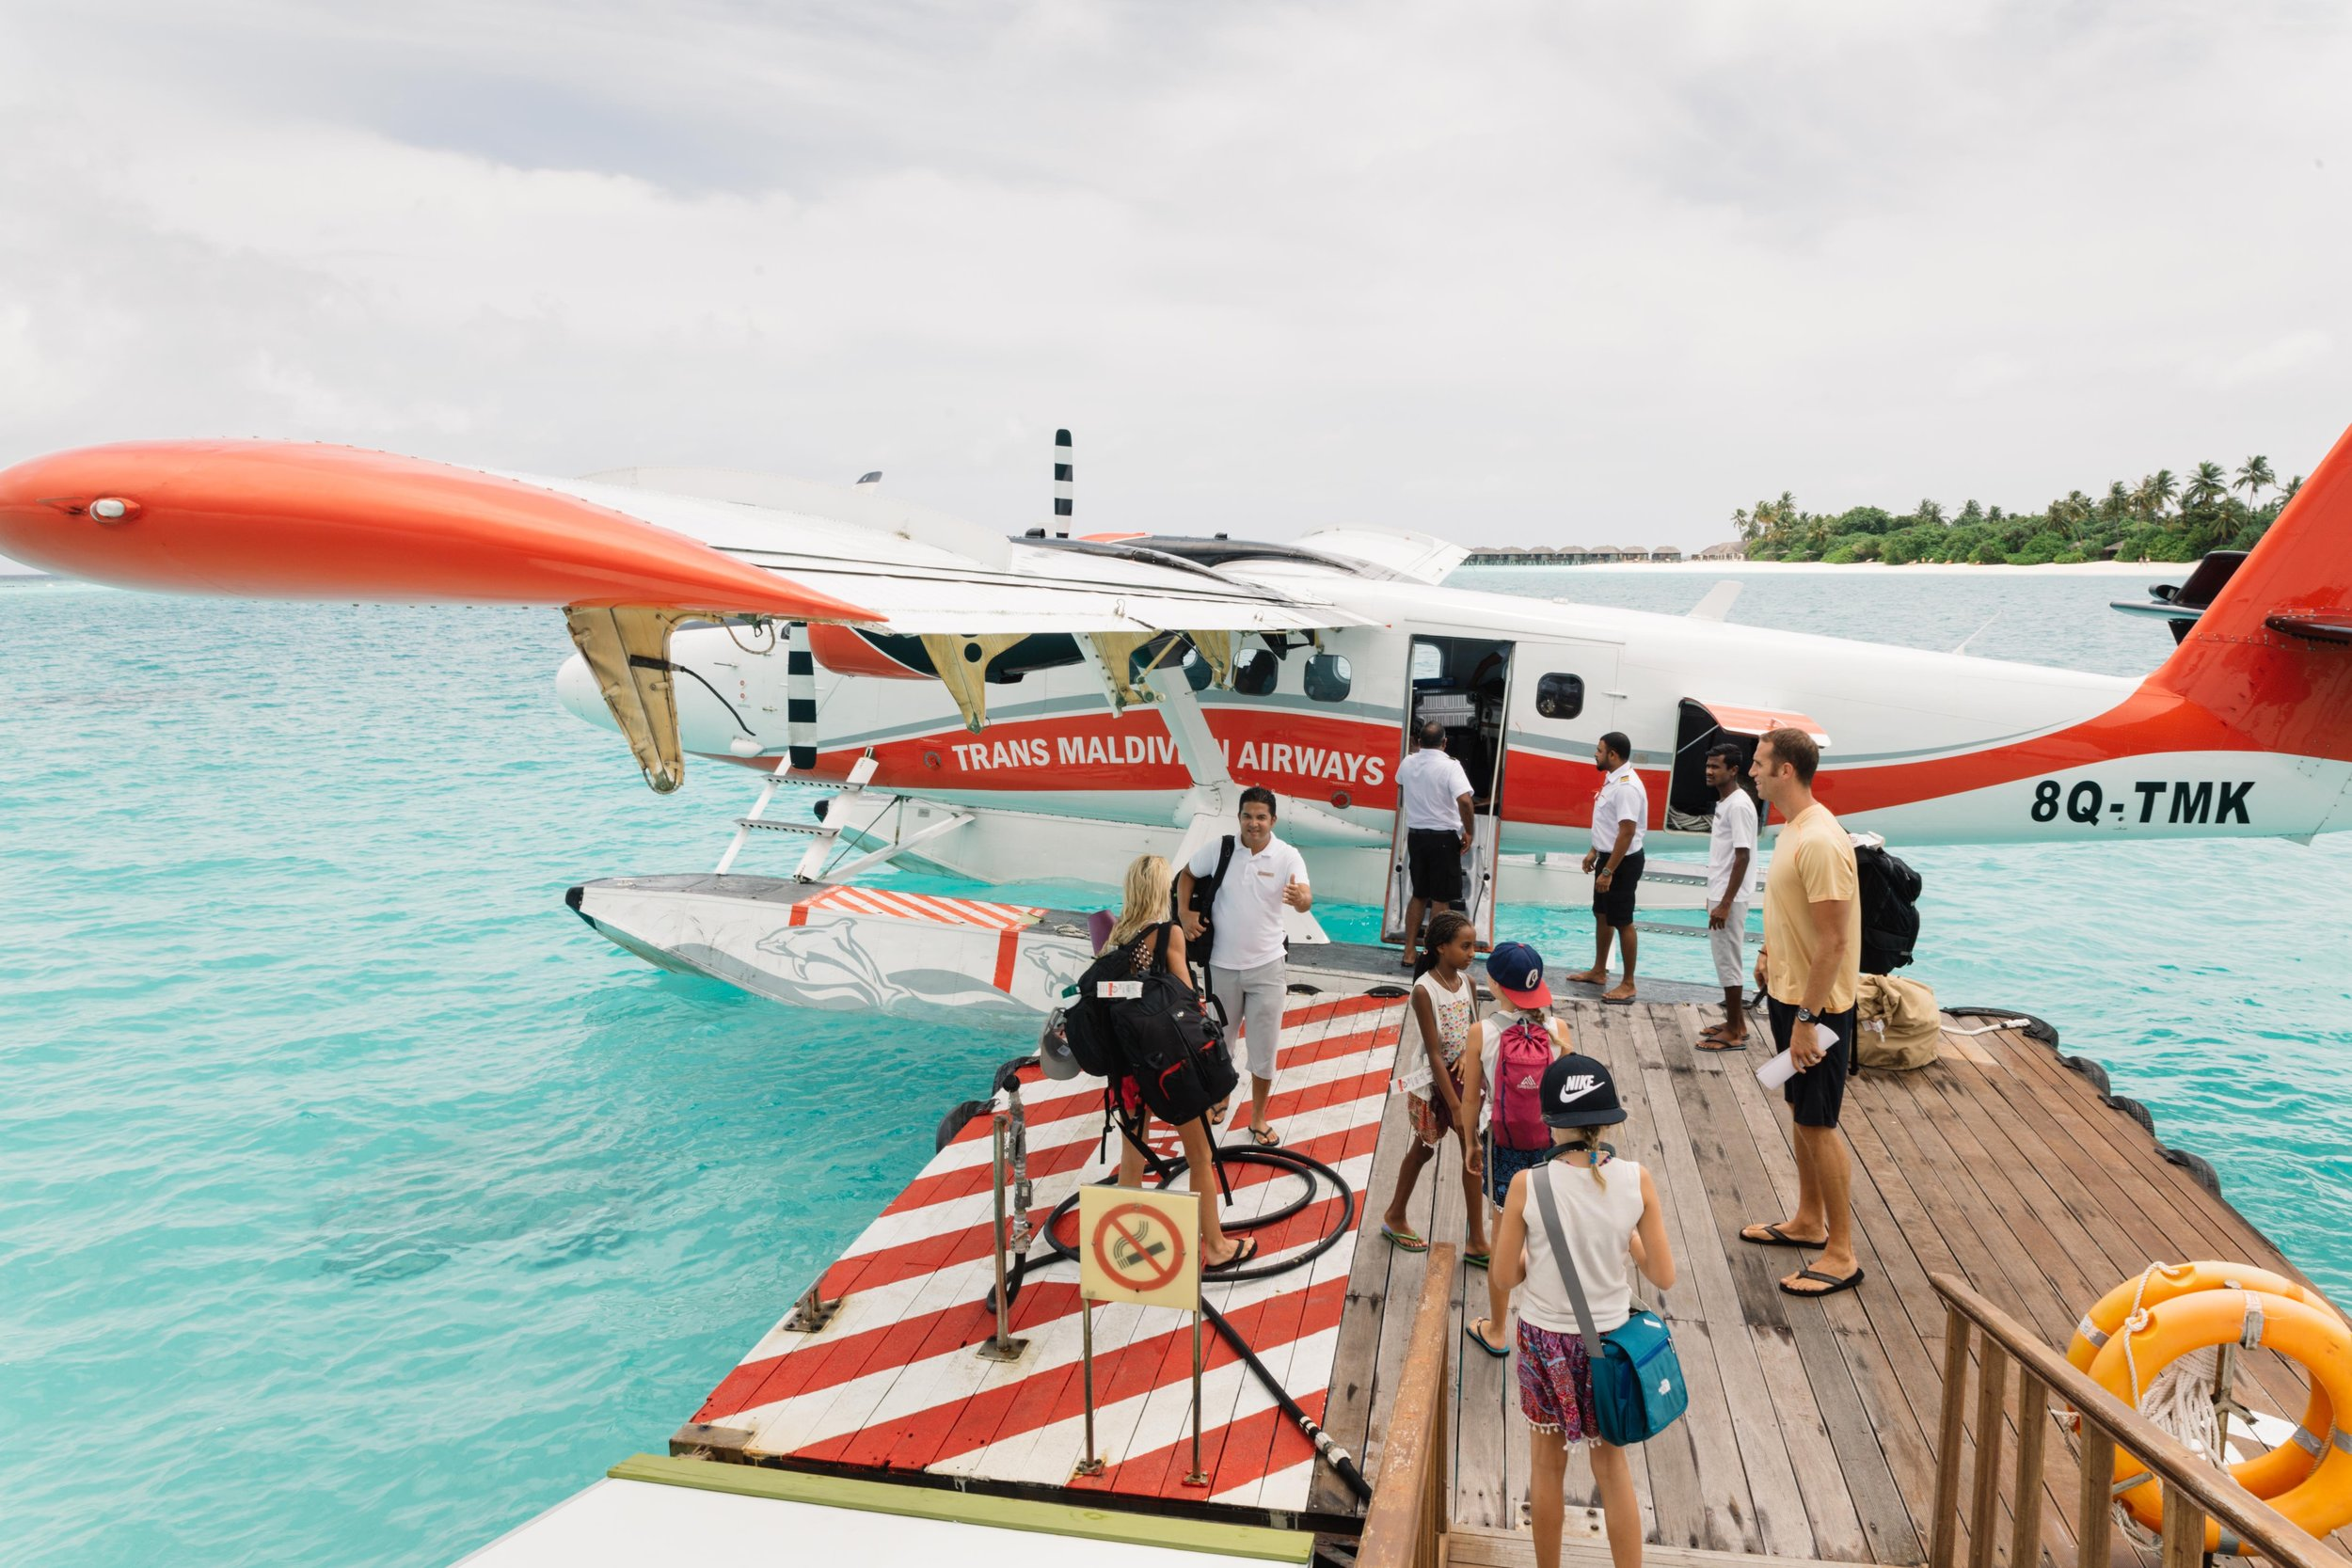 By far, the most adventurous and fun mode of transportation we had during our journey. This seaplane ride from Male to the Noonu atoll in Maldives, was an experience we will not soon forget. The views were beyond spectacular but we could have done without the few pop-up thunderstorms we encountered on our approach to landing in the water at our resort. Trans Maldivian Airlines could be our new favorite airline. Where else will you find a barefoot pilot?